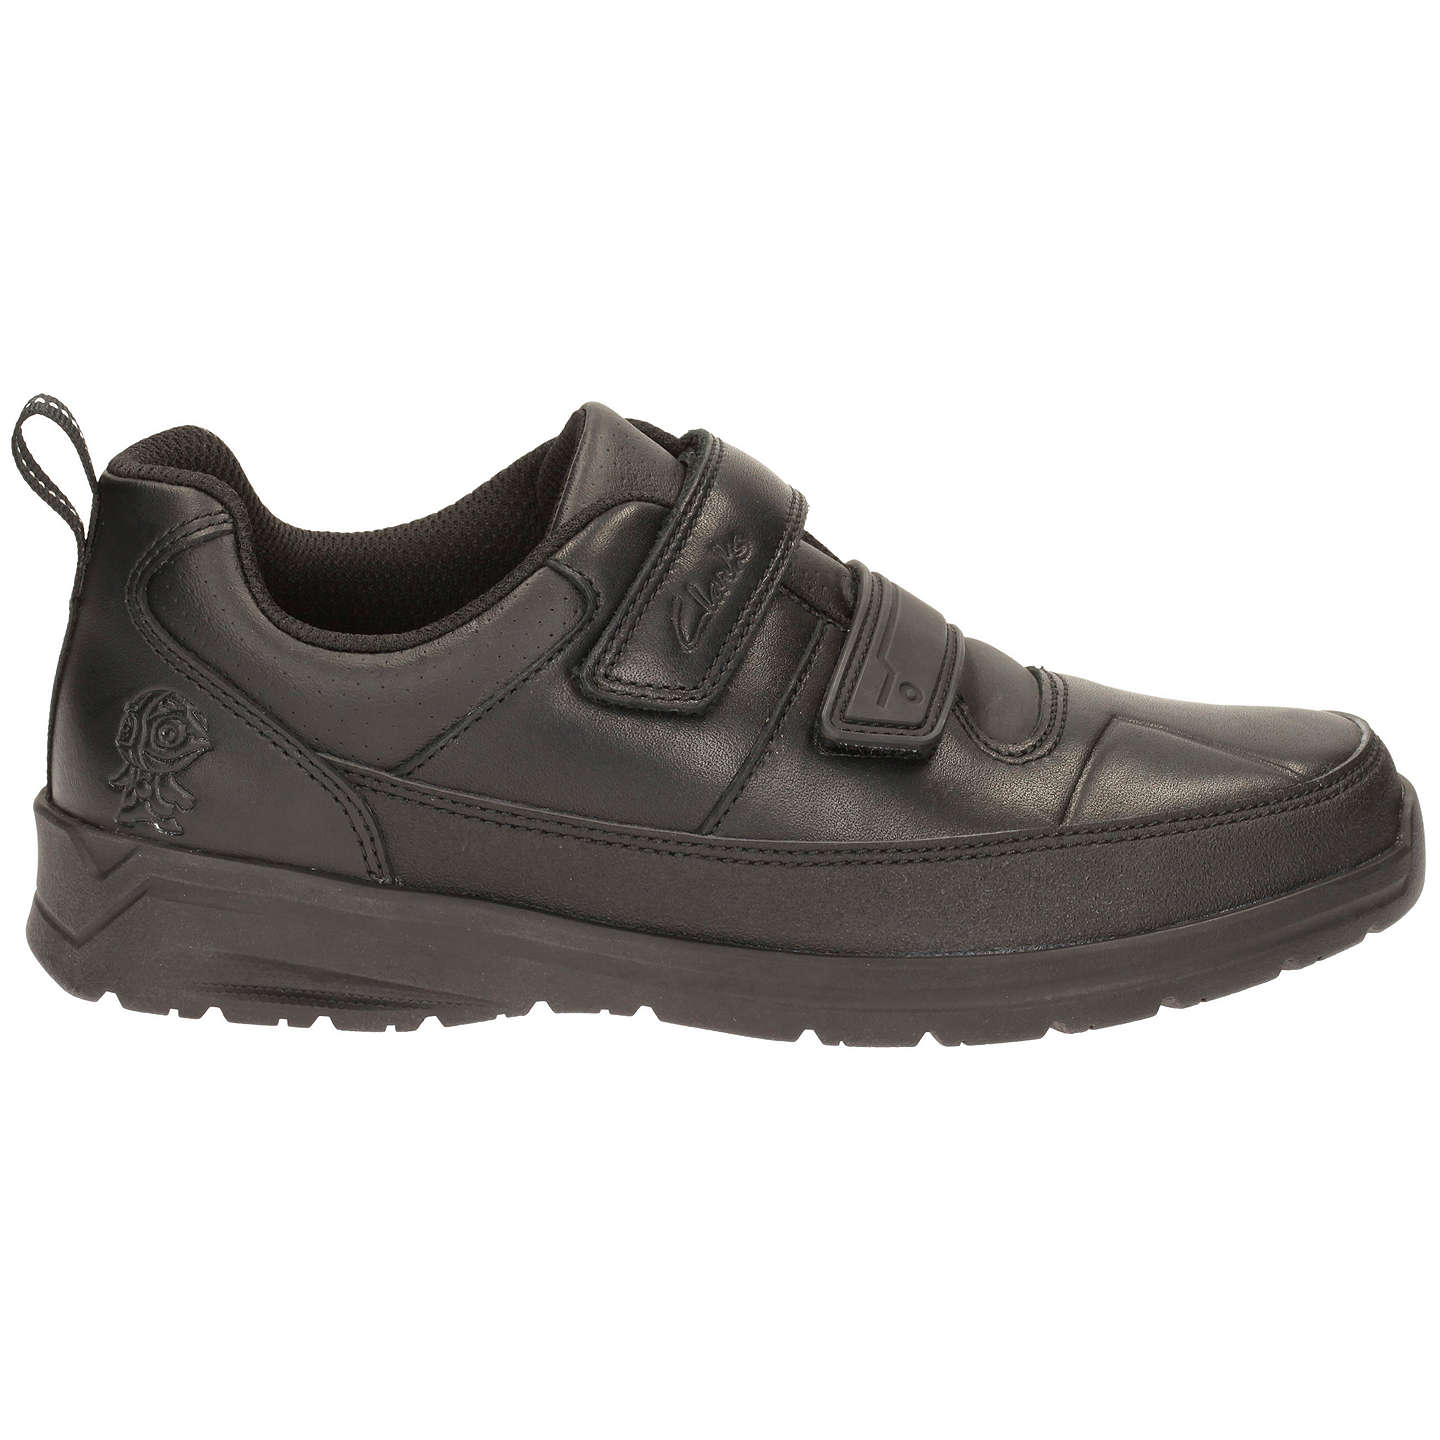 Clarks Gloforms Reflect Ace Junior Boys School Shoes in Black Leather 3 G Black Leather Q9o0Y4T